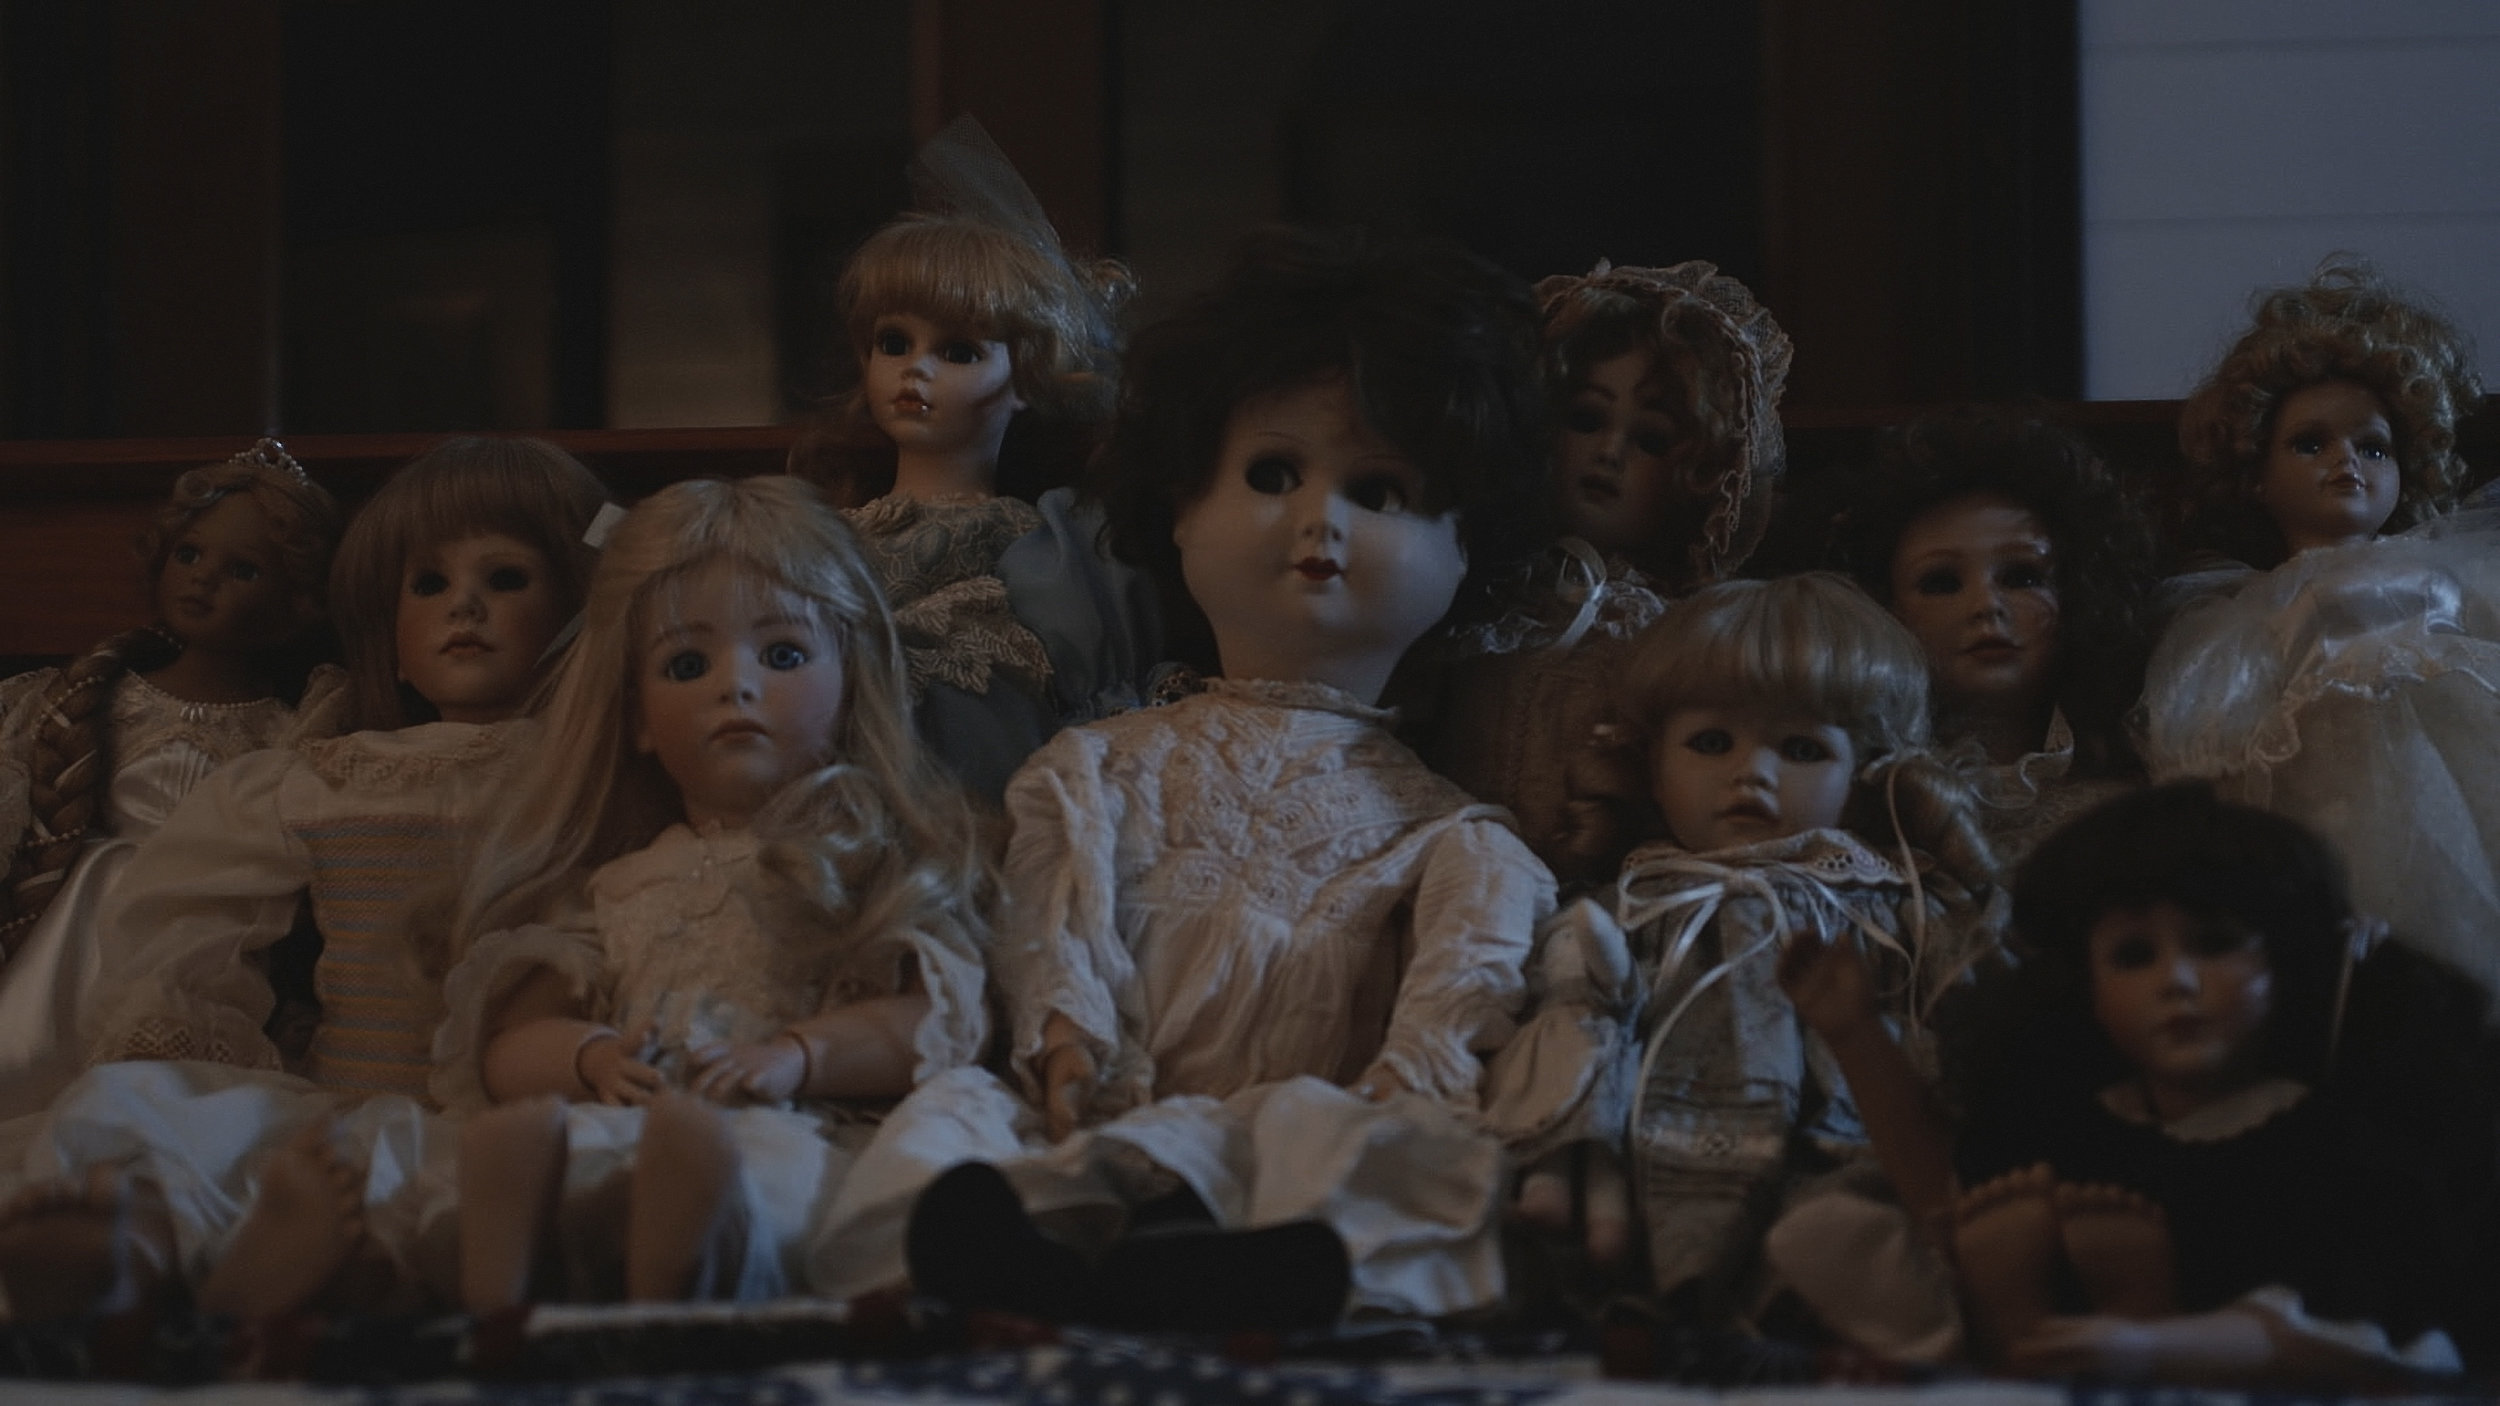 The dolls from Dolls